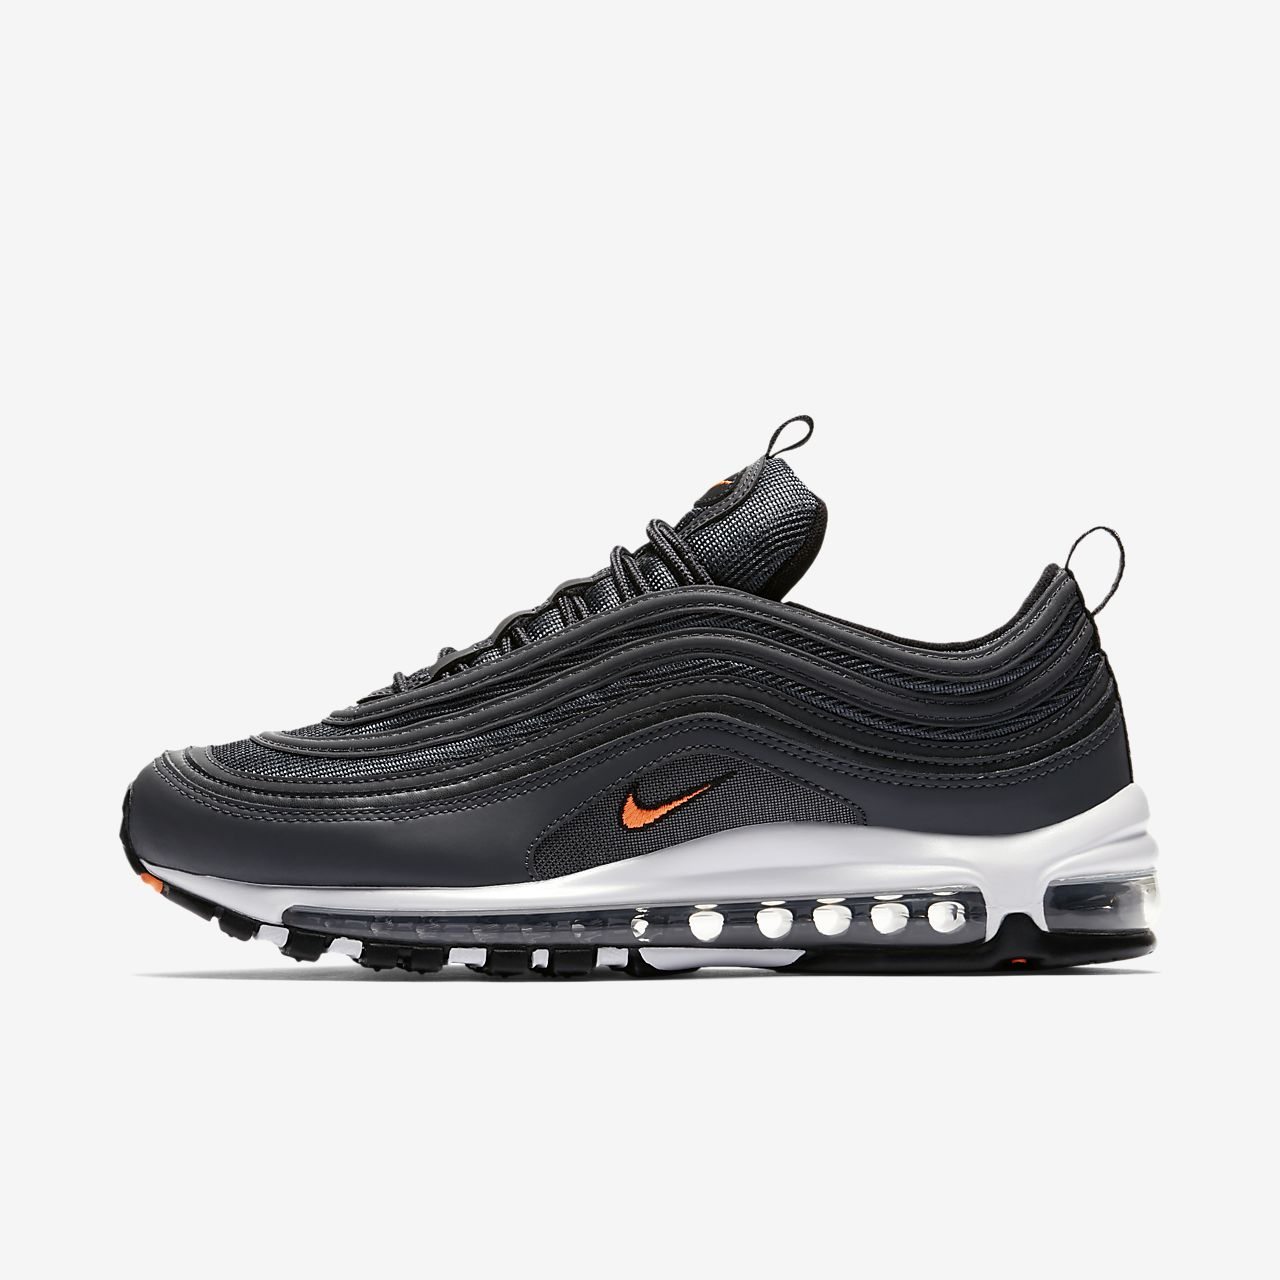 official photos da03d 7c322 ... Nike Air Max 97 - sko til mænd